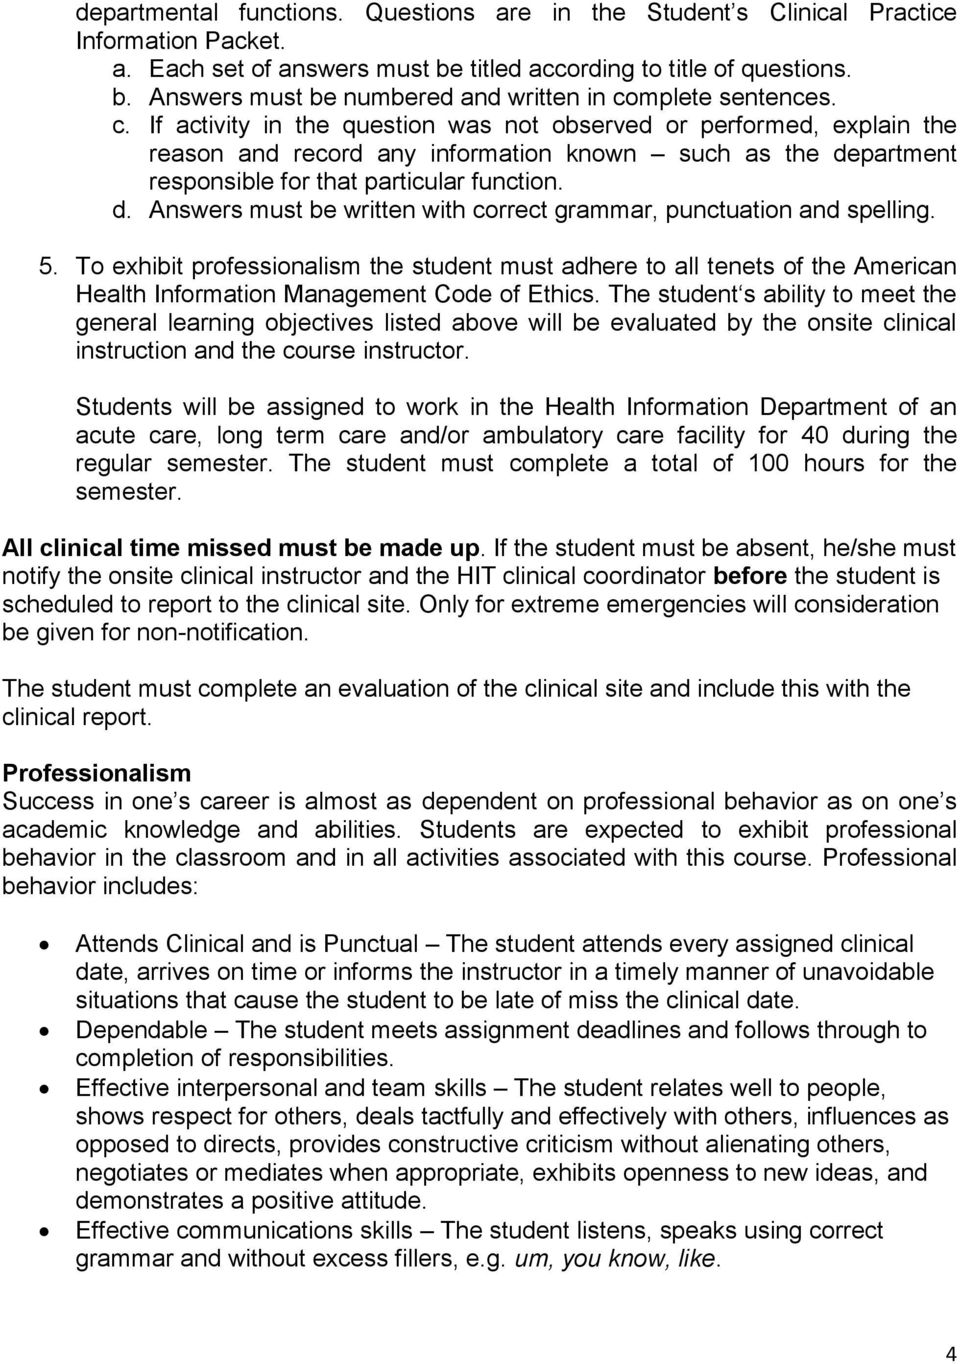 5. To exhibit professionalism the student must adhere to all tenets of the American Health Information Management Code of Ethics.